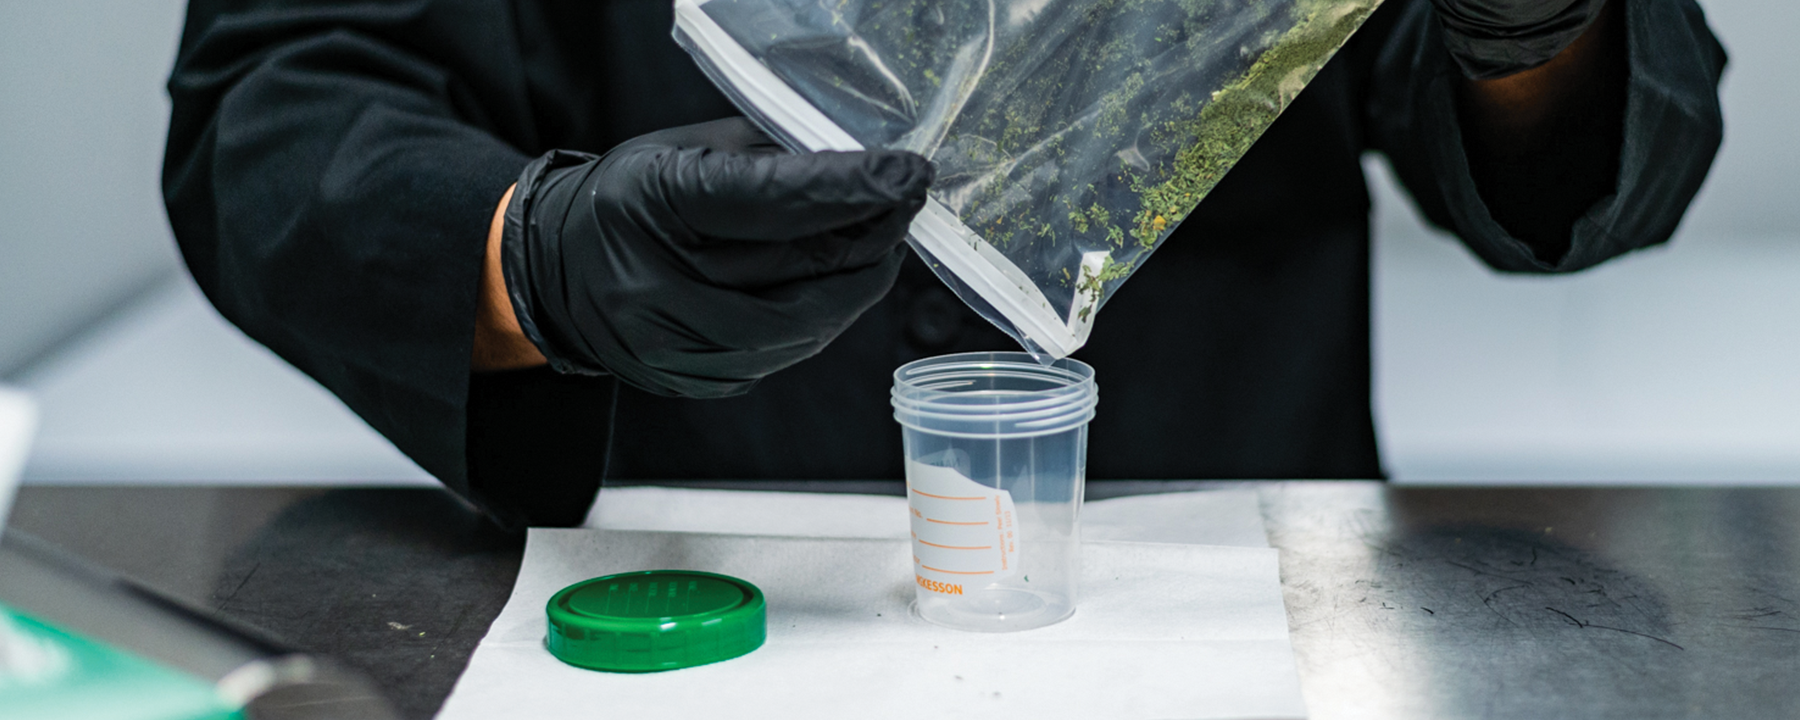 Variation in Cannabis Testing Challenges a Young Industry